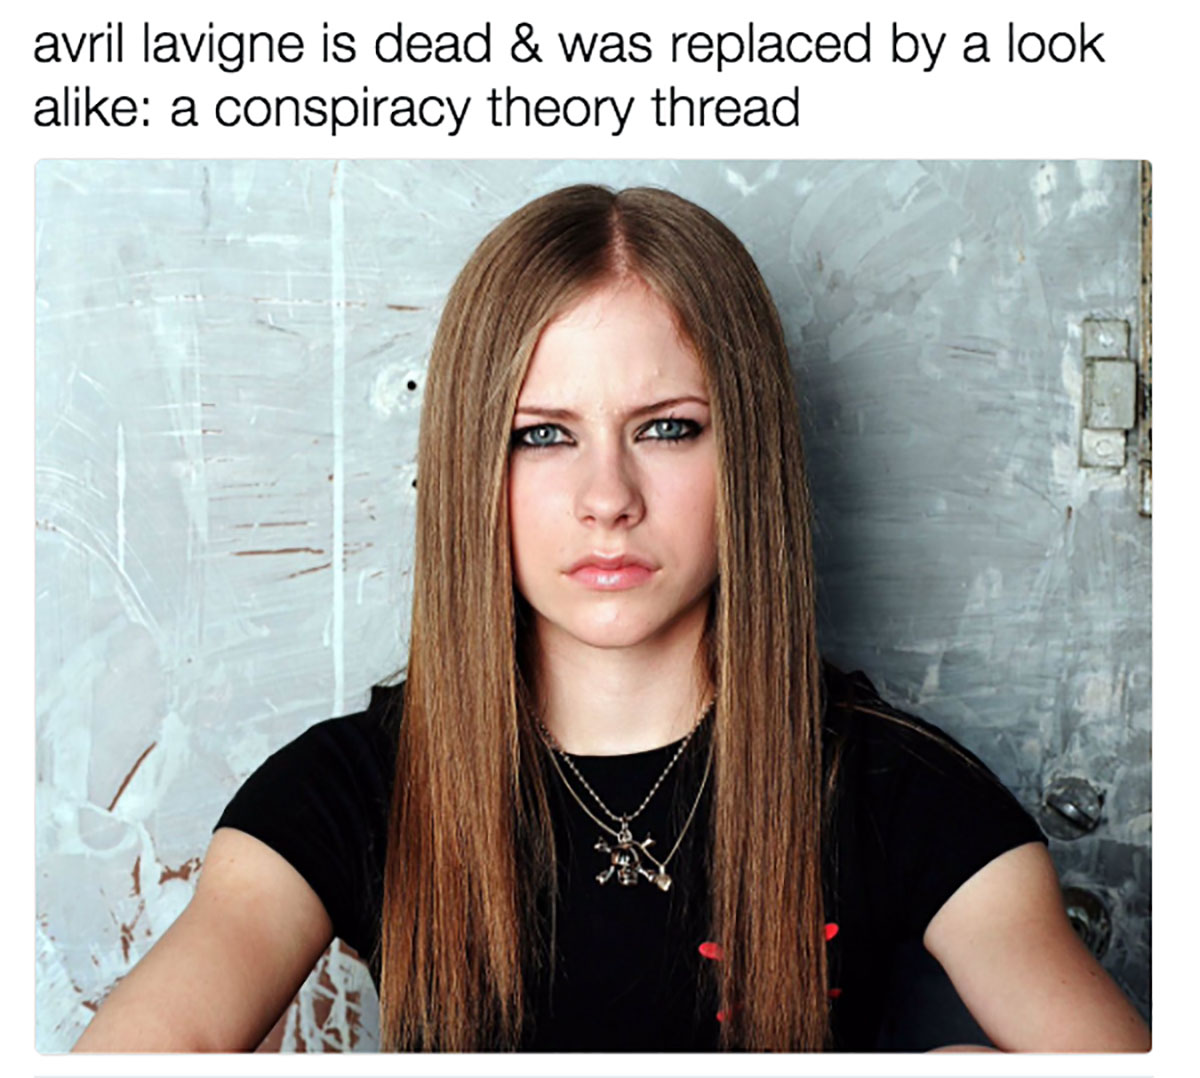 As an Avril Lavigne conspiracy takes over Twitter, everyone is left questioning her true identity.